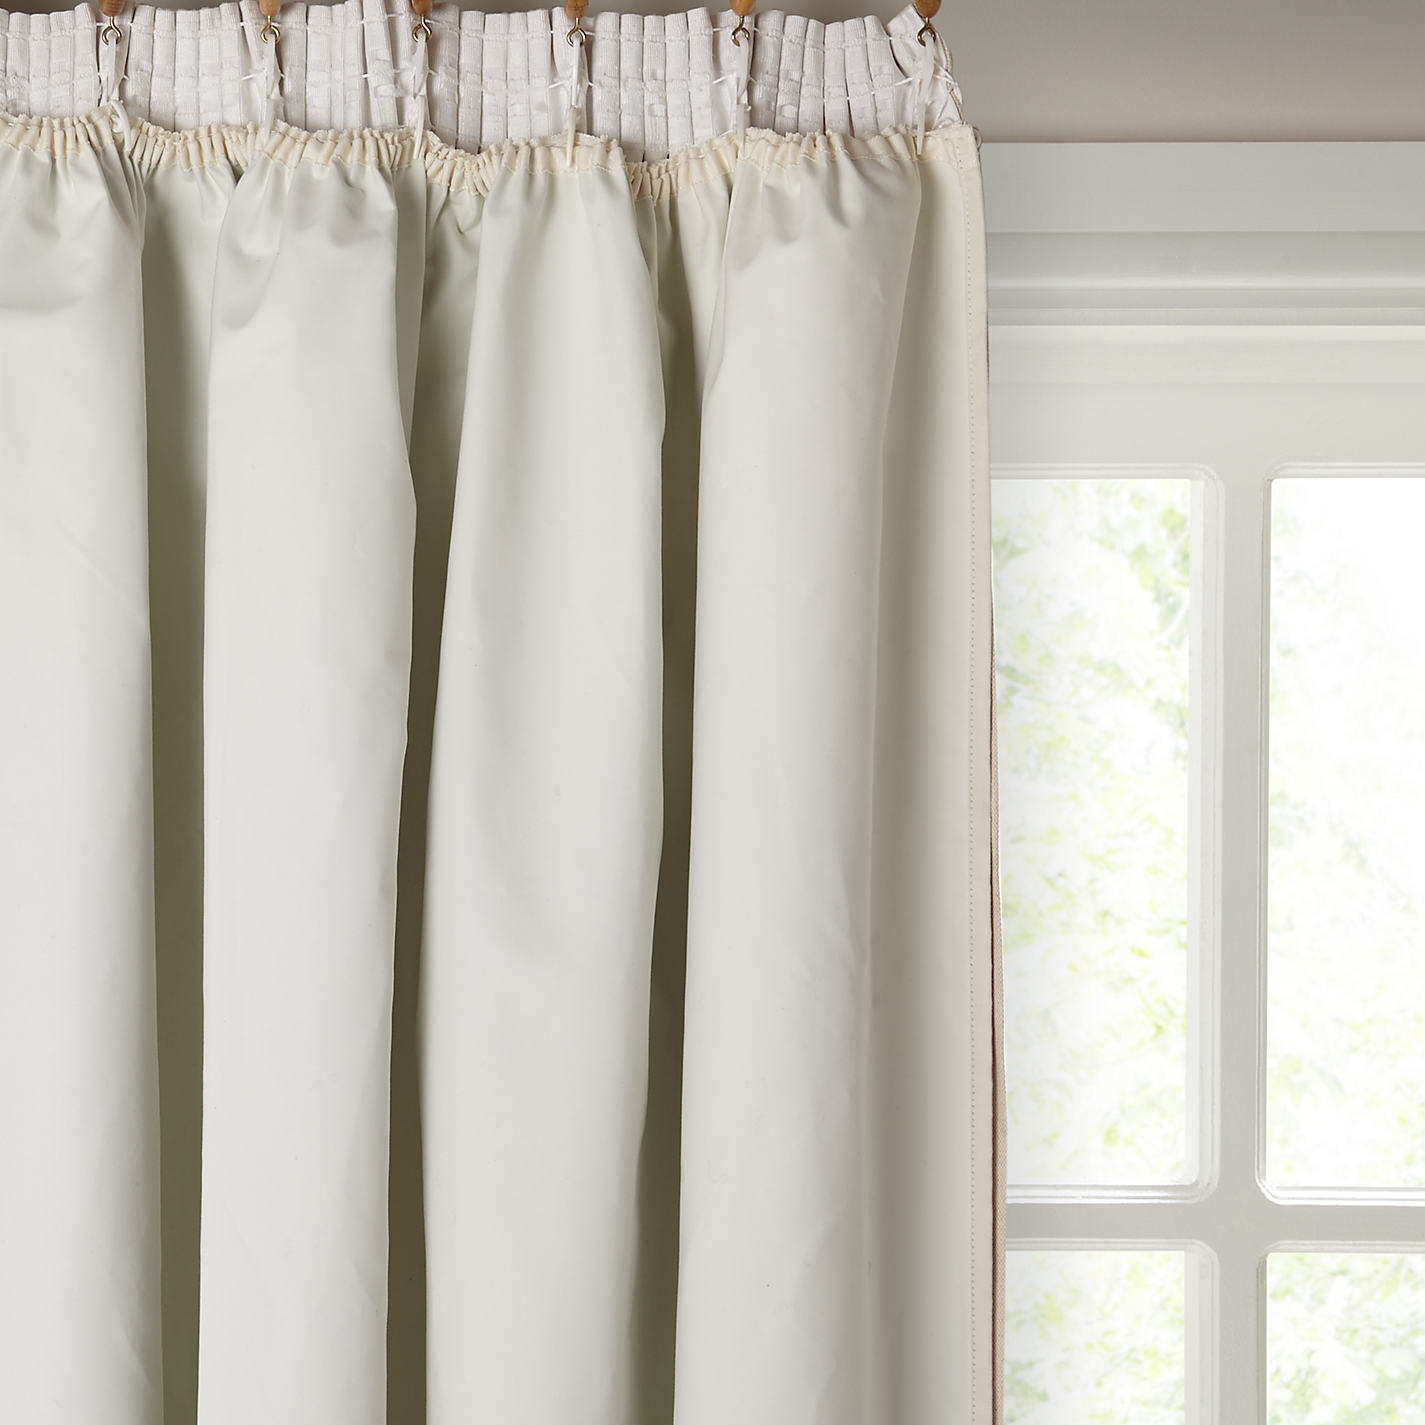 Buy John Lewis Pencil Pleat Blackout Curtain Linings, Ivory | John ...